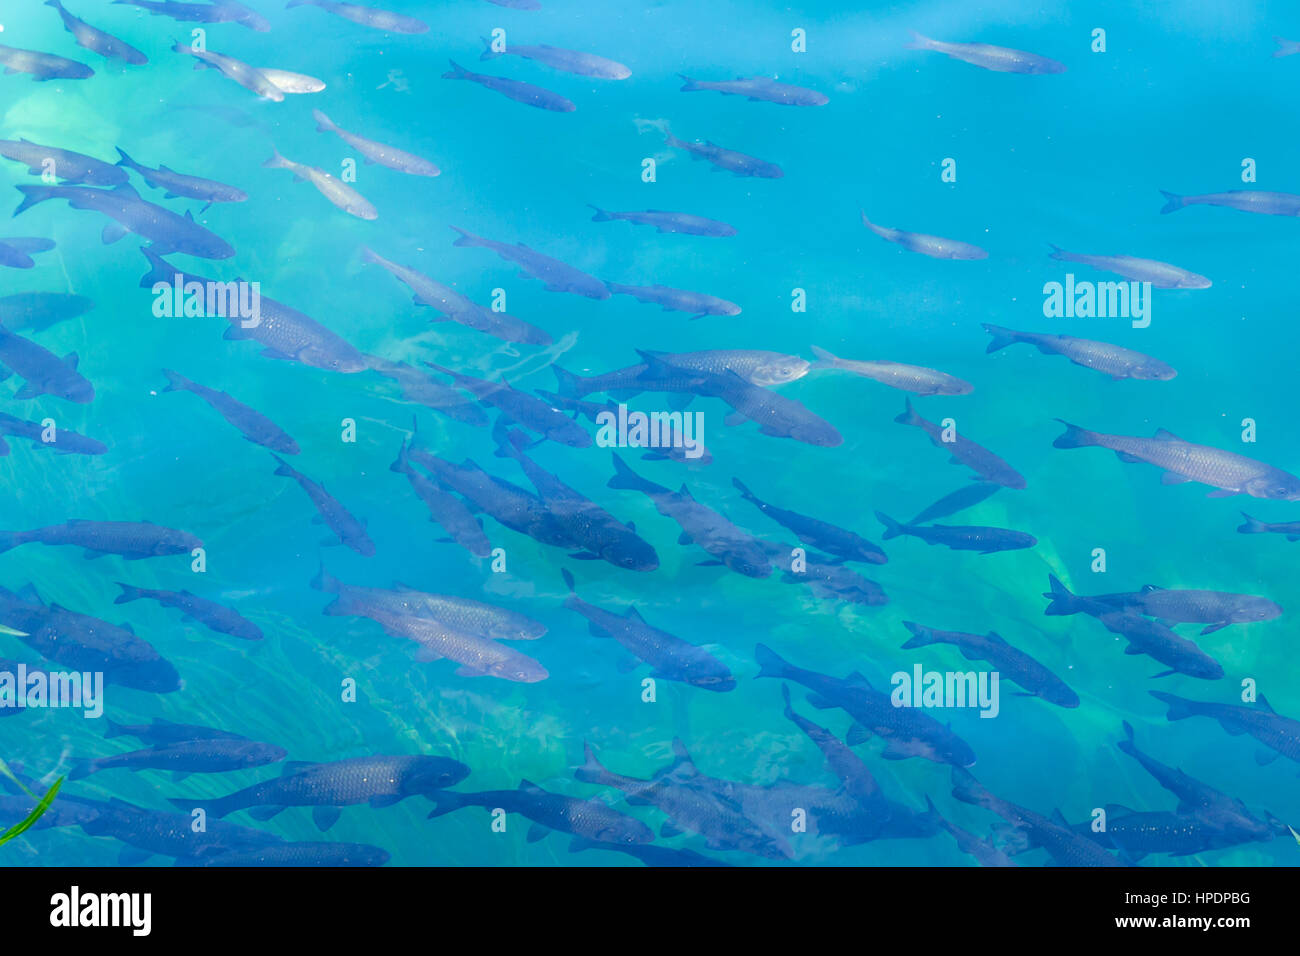 of fish in bright blue river abstract background texture